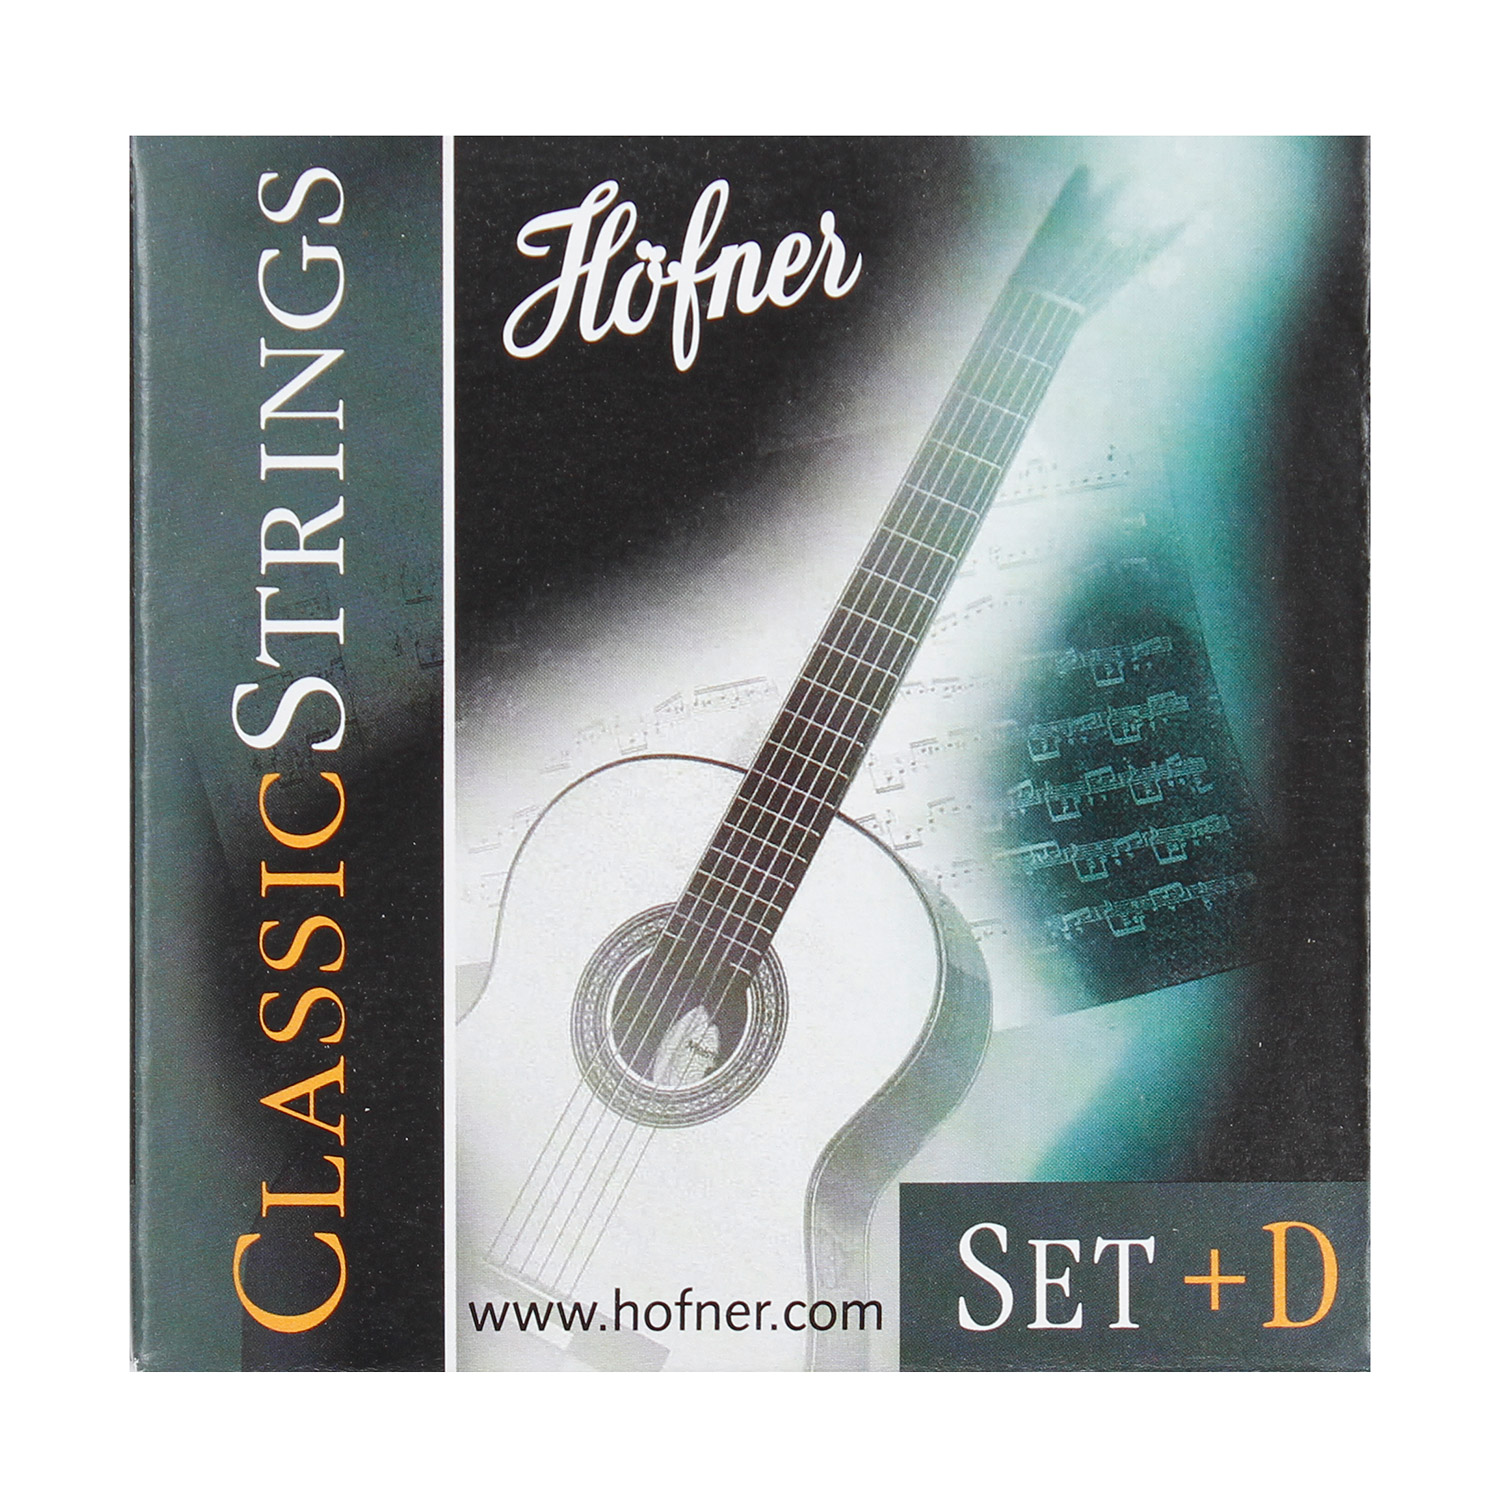 Höfner strings